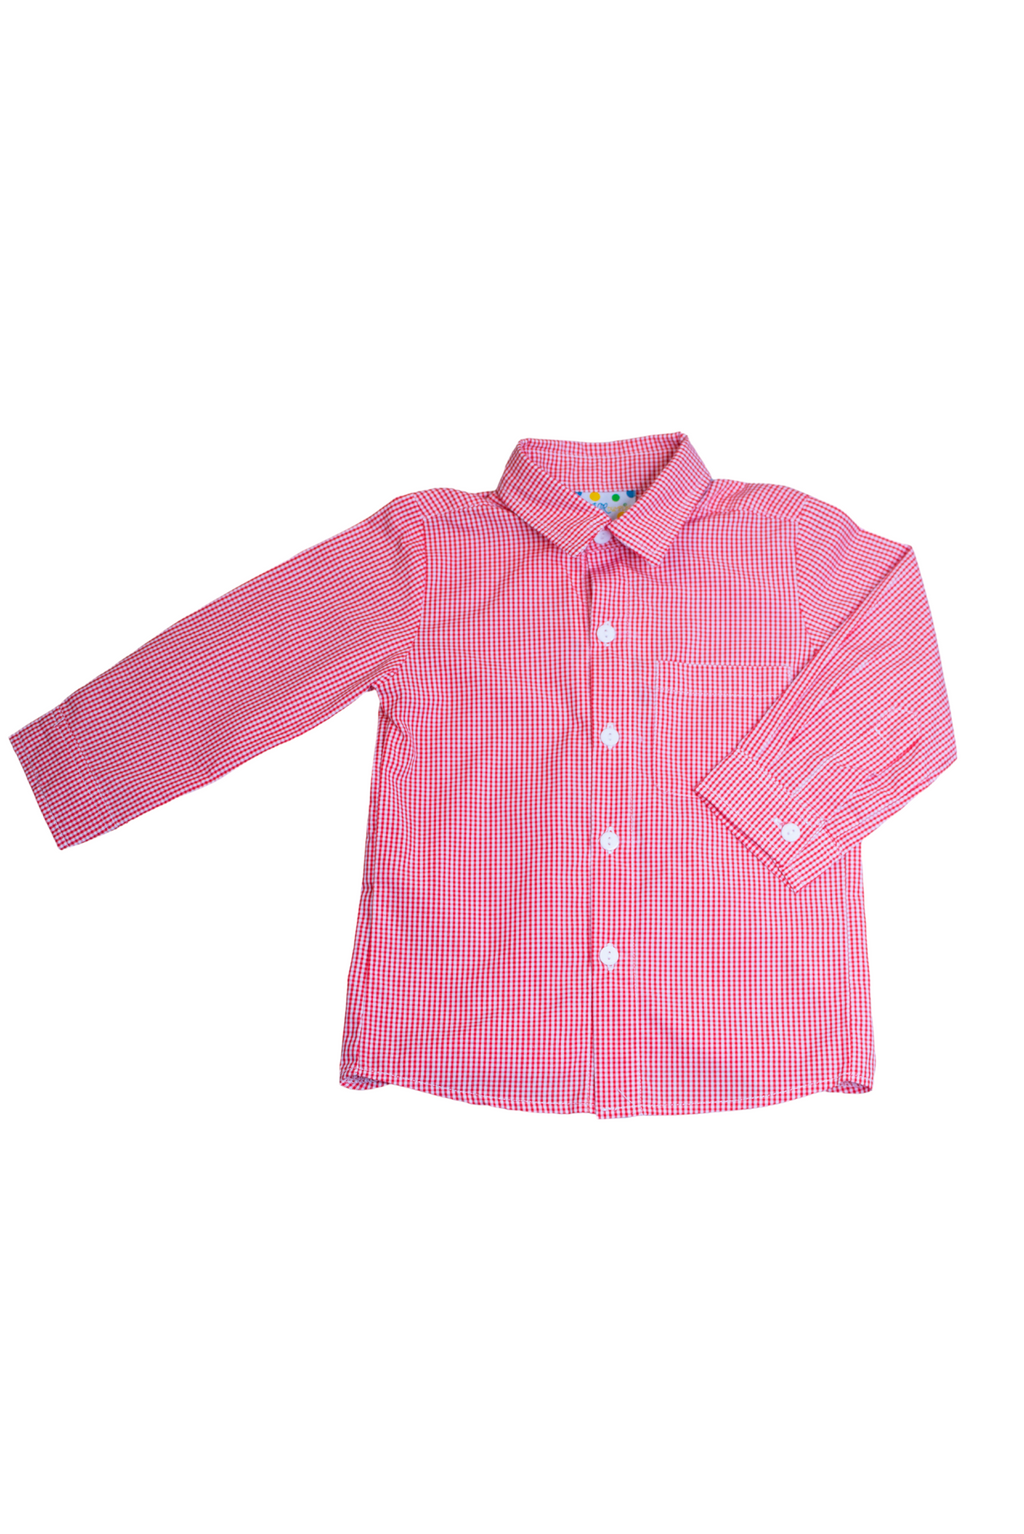 Boys Red Gingham Button Down Shirt Only